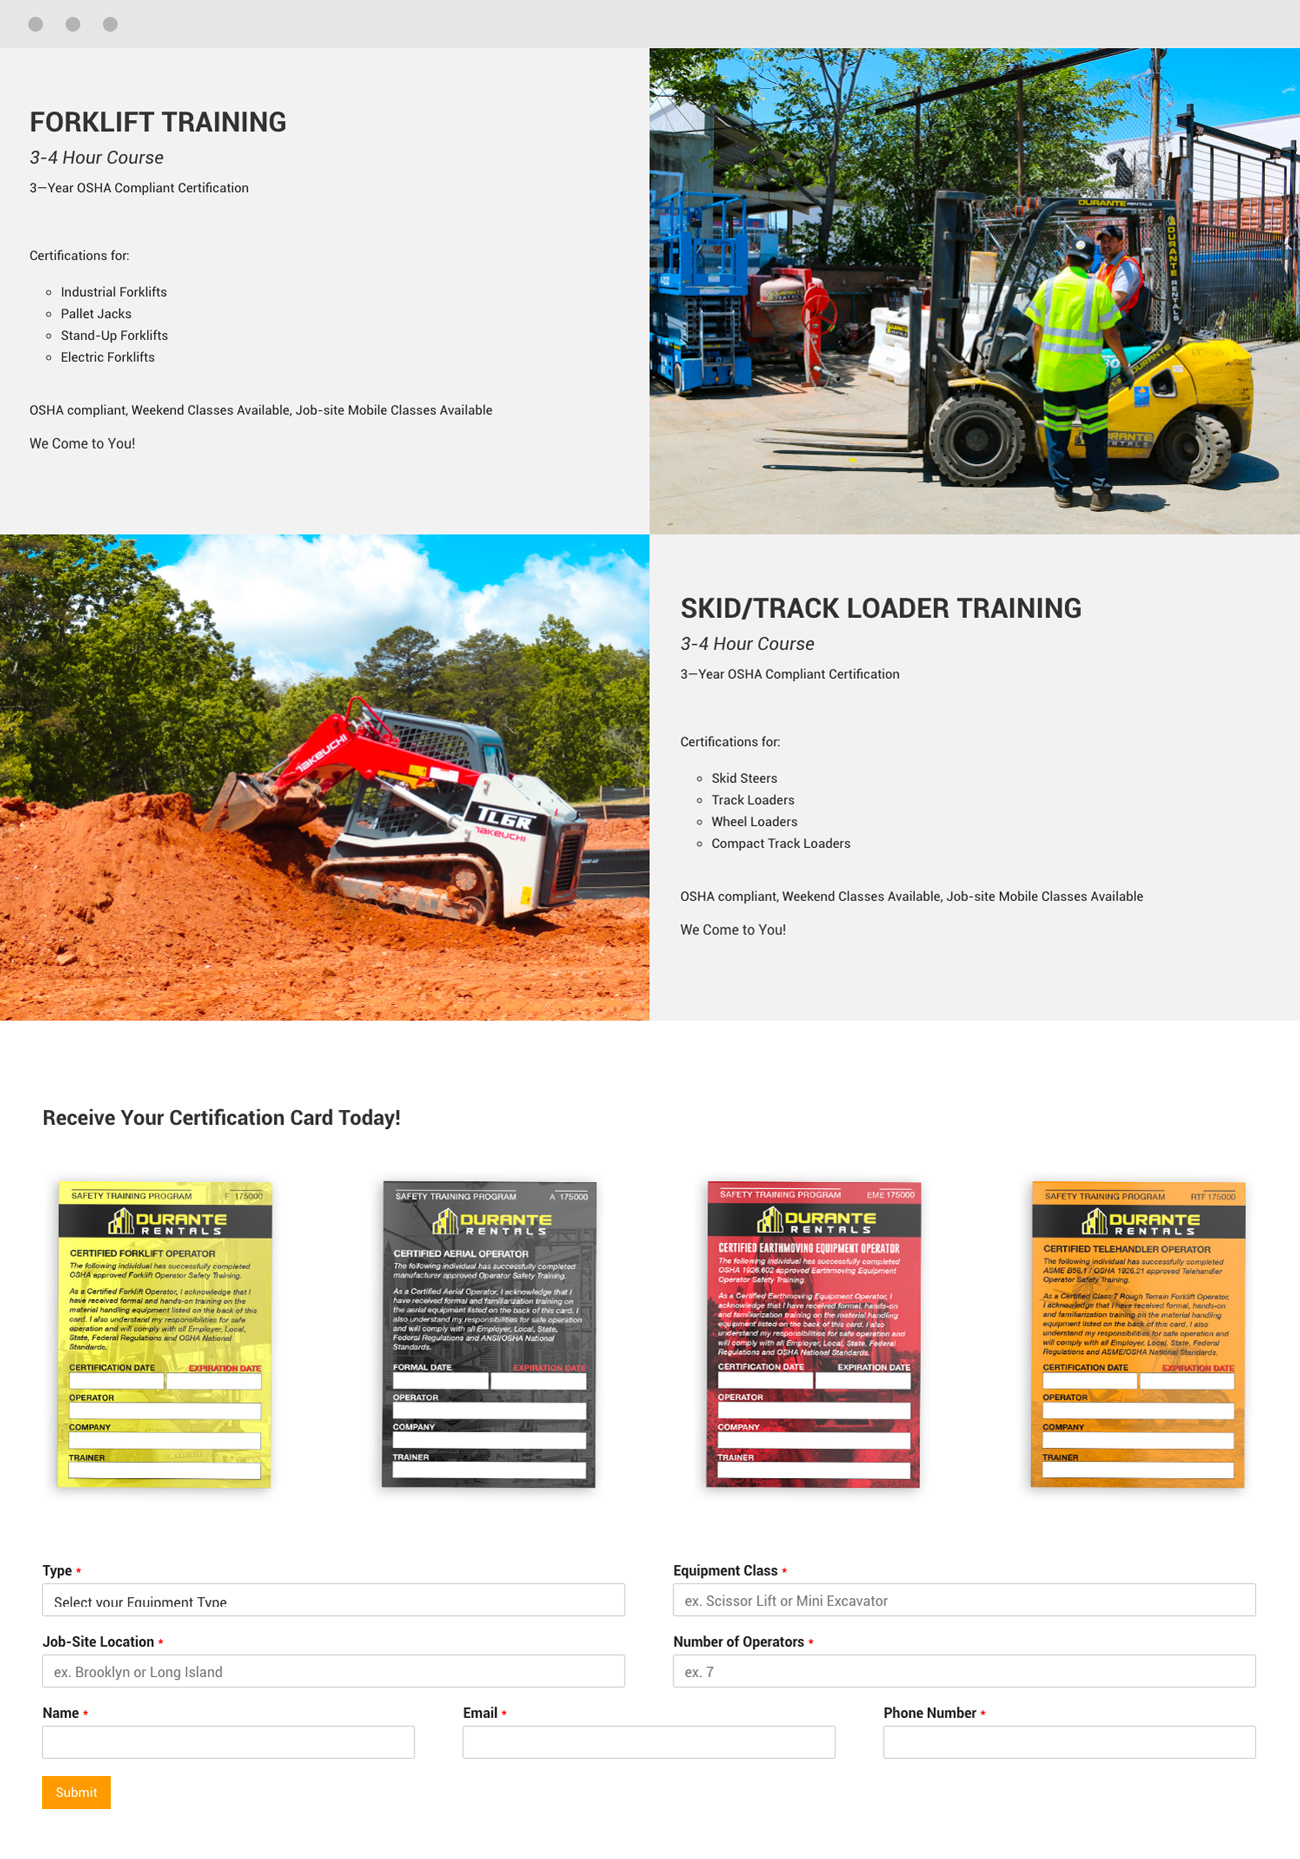 Construction Training & Certification Website Forklift and Track Loader Certification Card